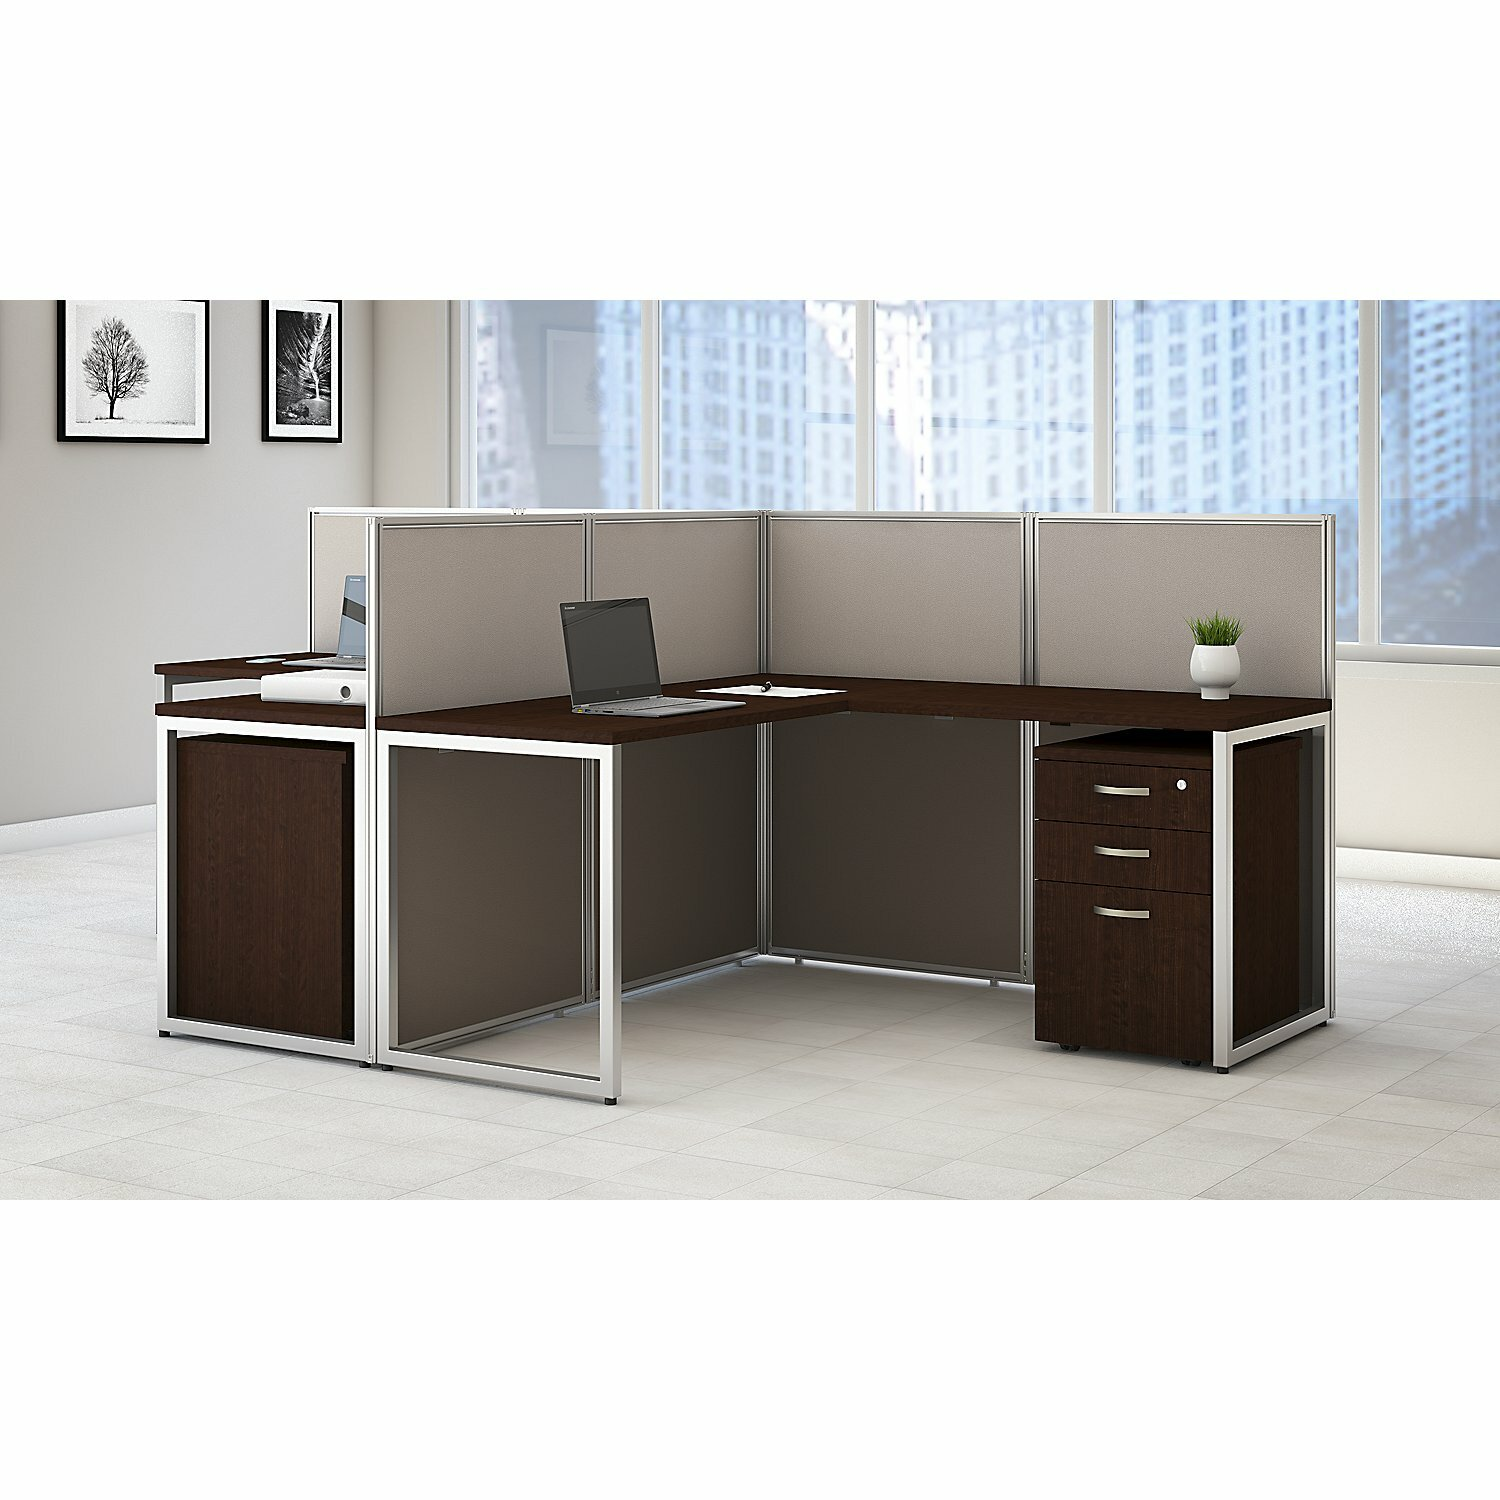 commercial commercial office furniture office workstations